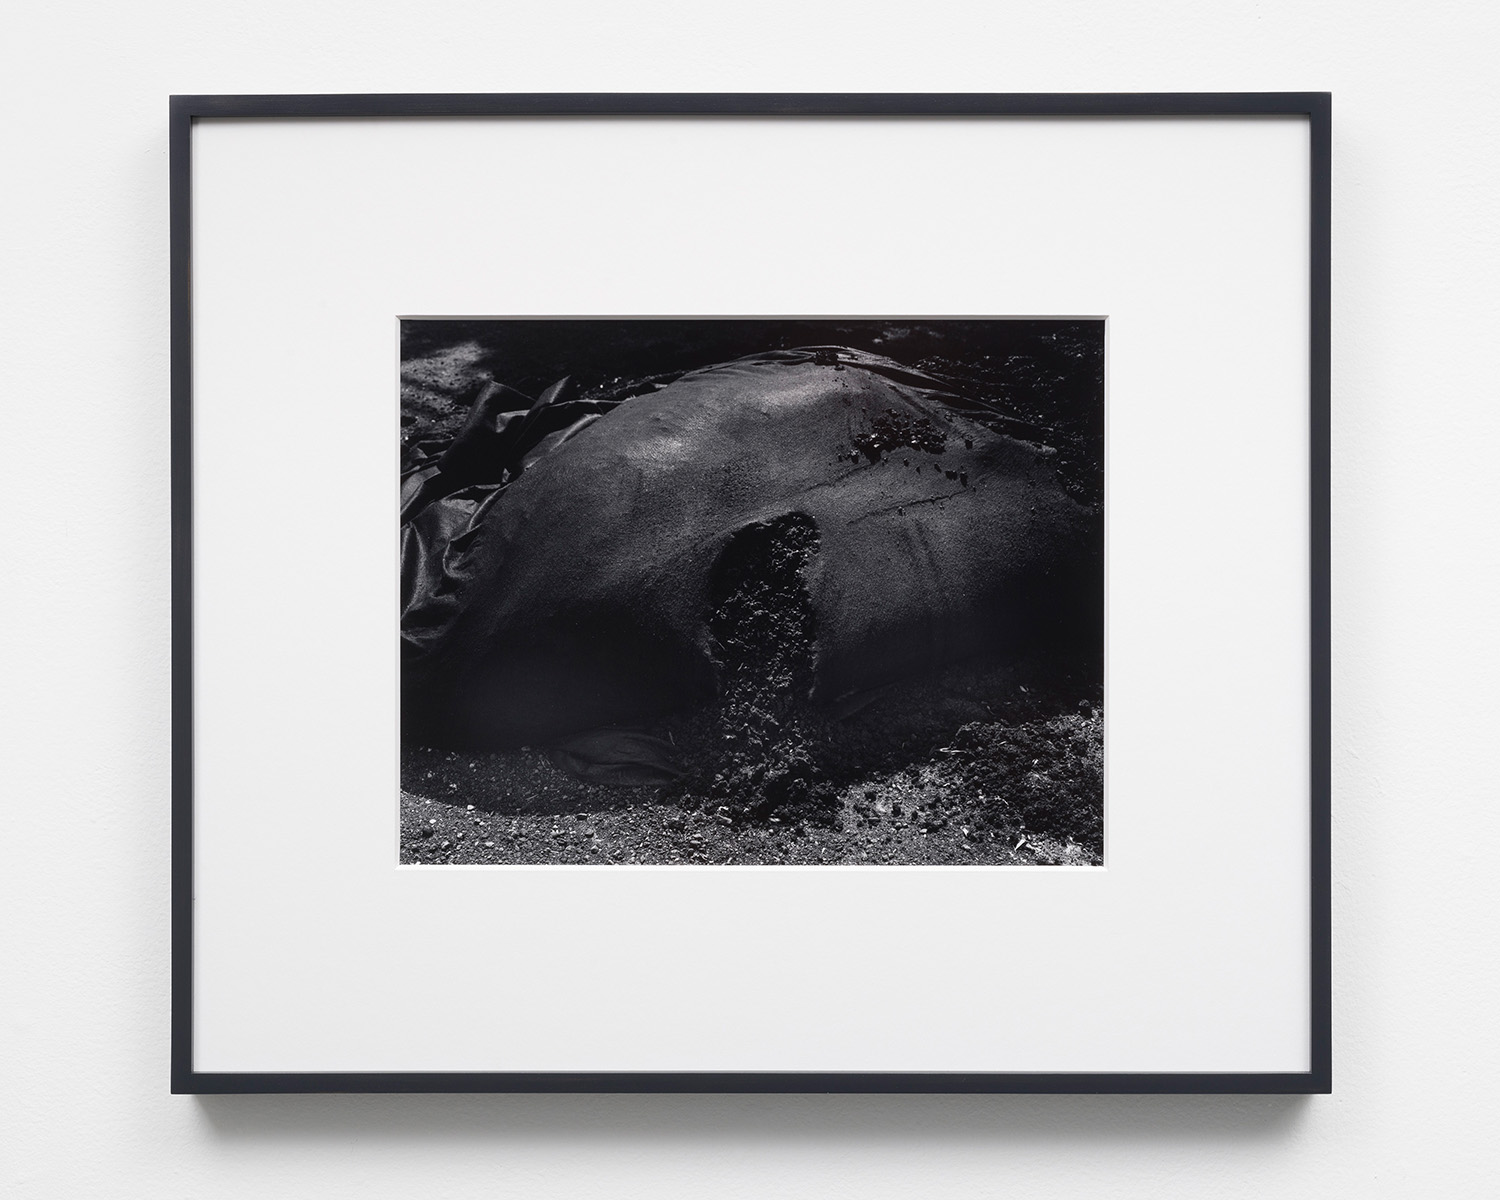 Flesh,  10.25 x 13.25, Gelatin silver print in 8 ply over-mat (18 x 21), 2018